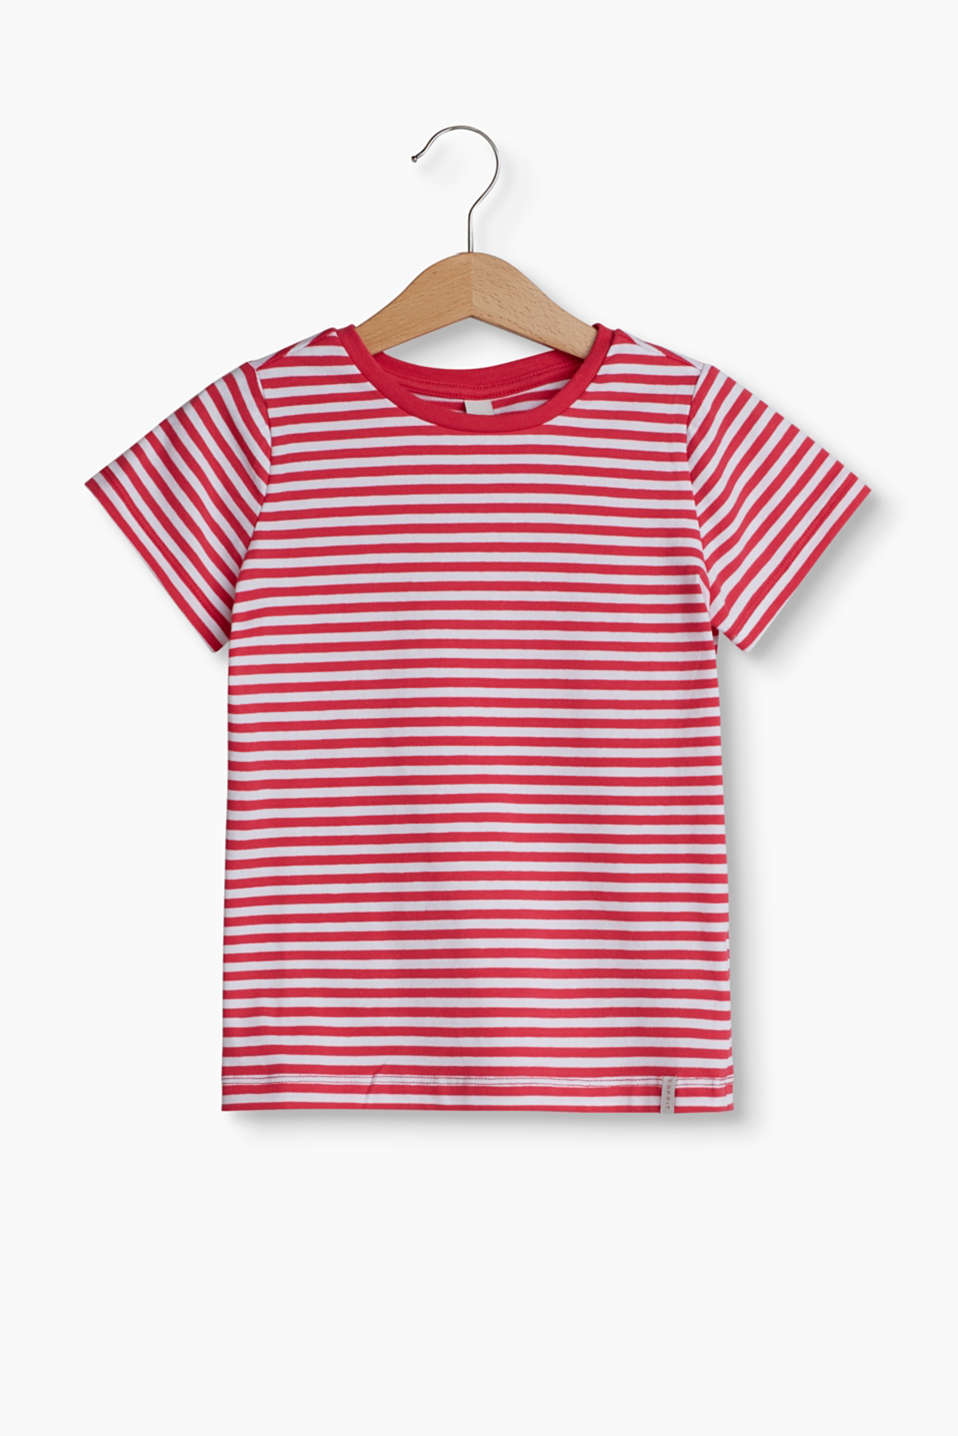 With a stripe pattern: Round neck T-shirt in soft cotton jersey with a percentage of stretch